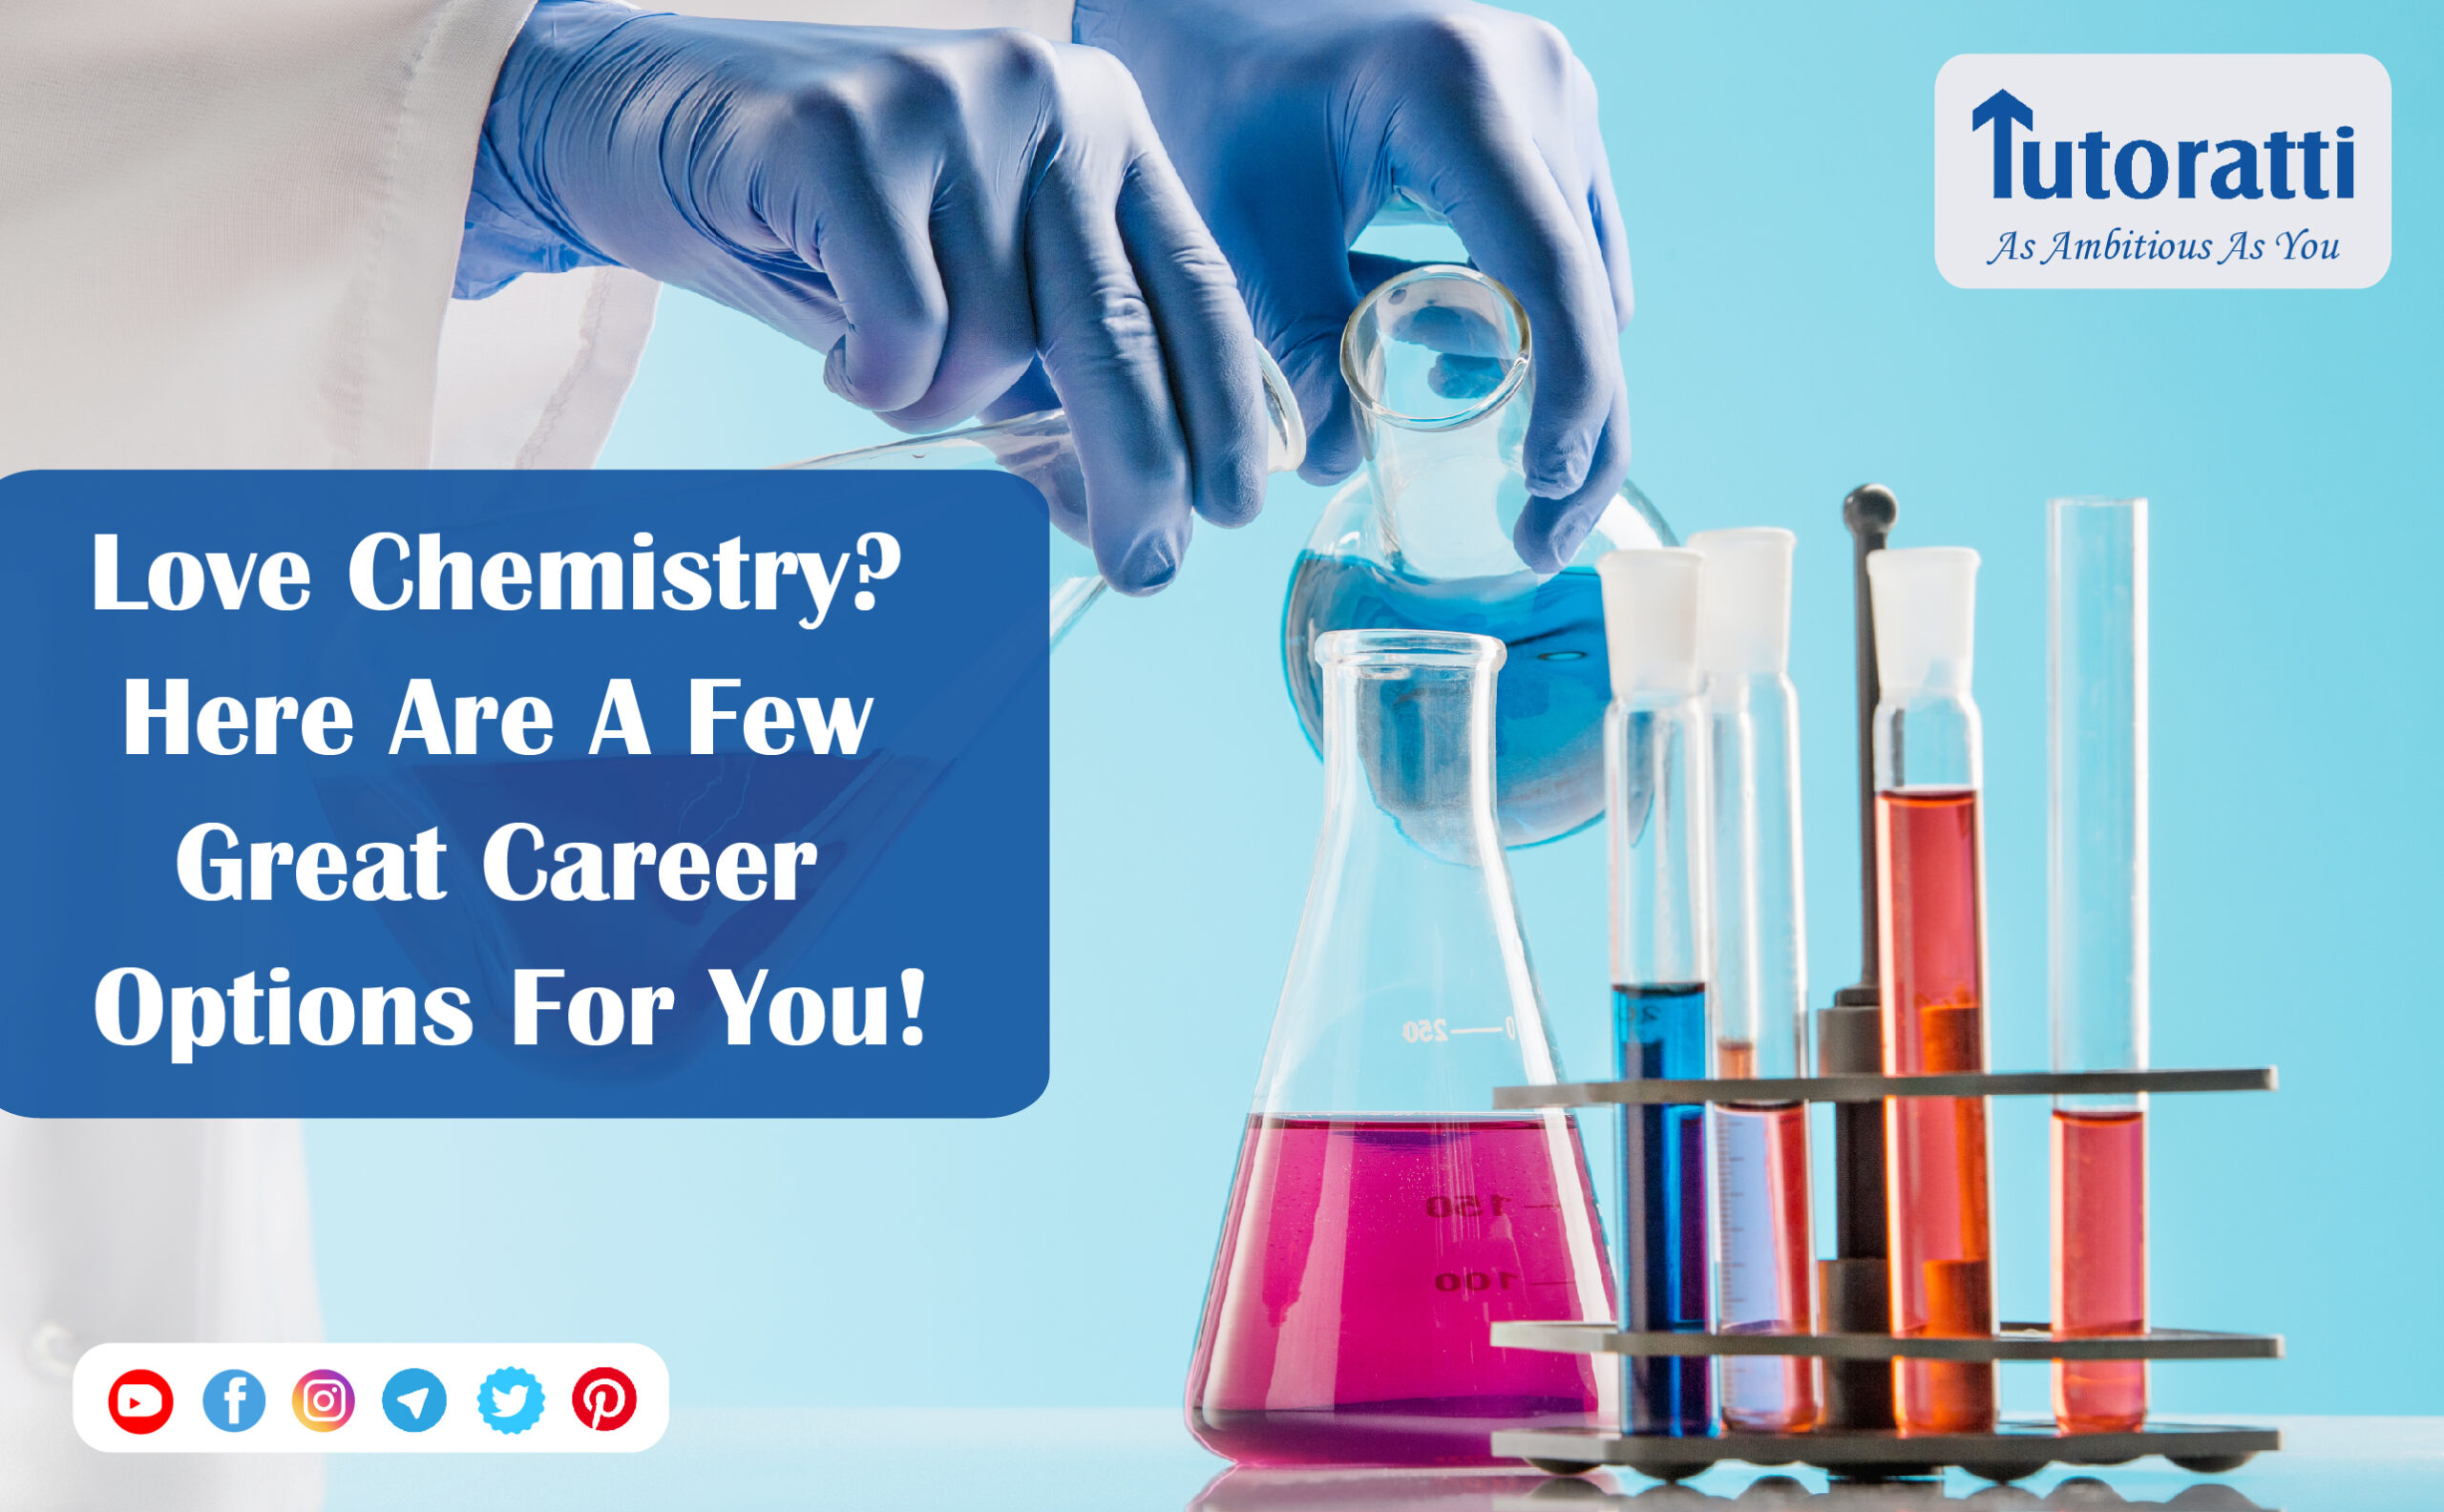 Love Chemistry? Here are a few great career options for you!